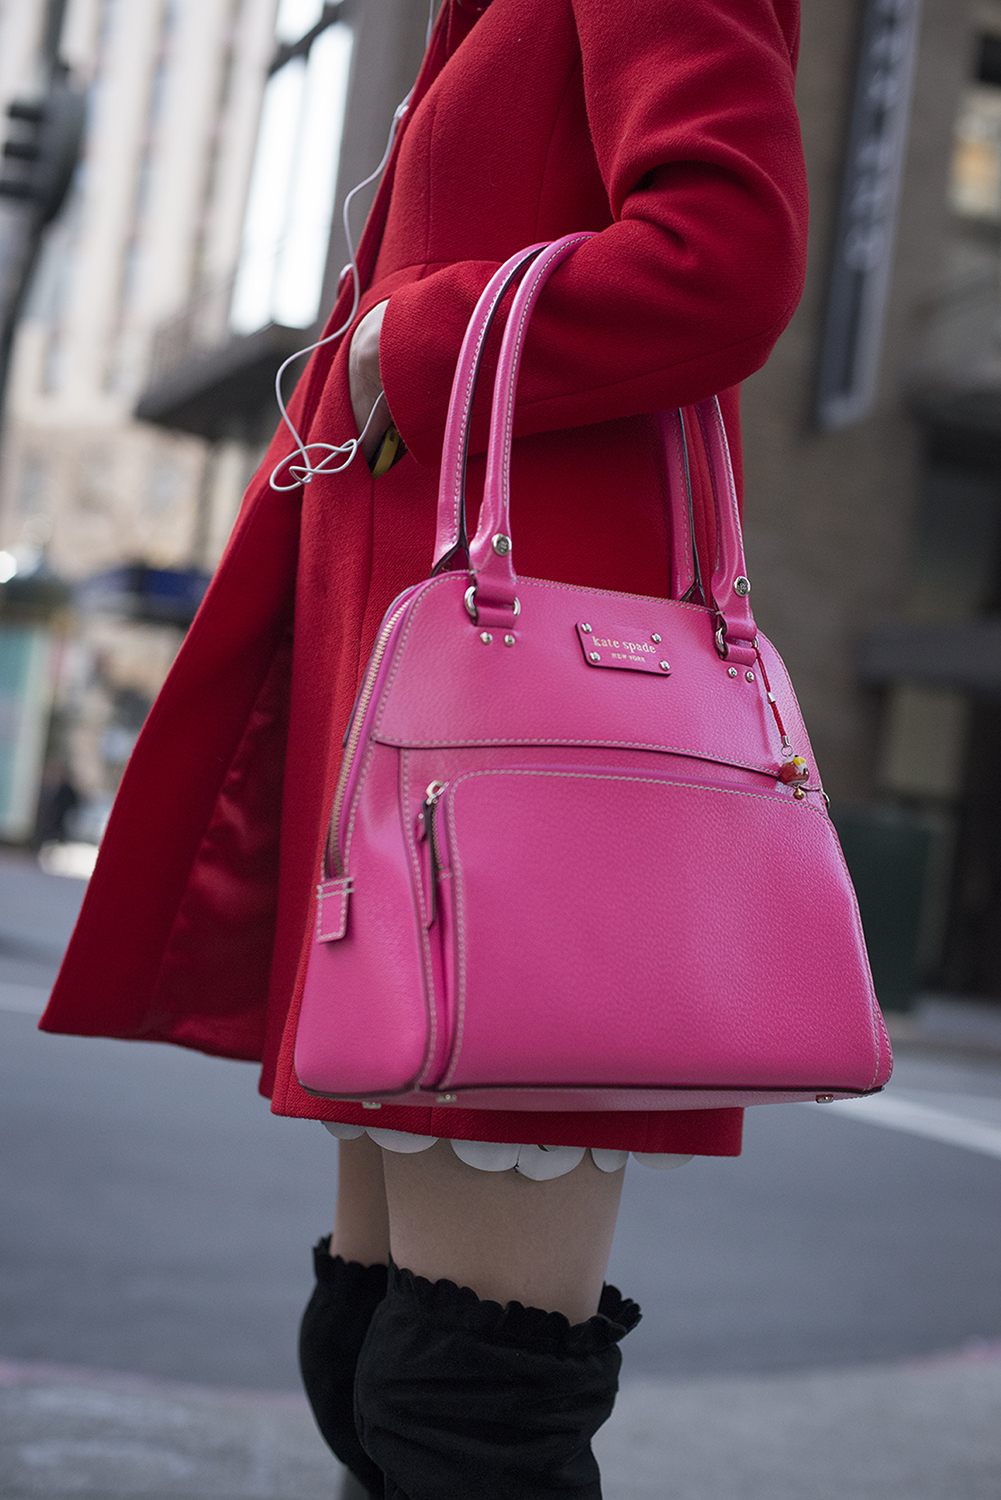 Young Woman with Pink Purse